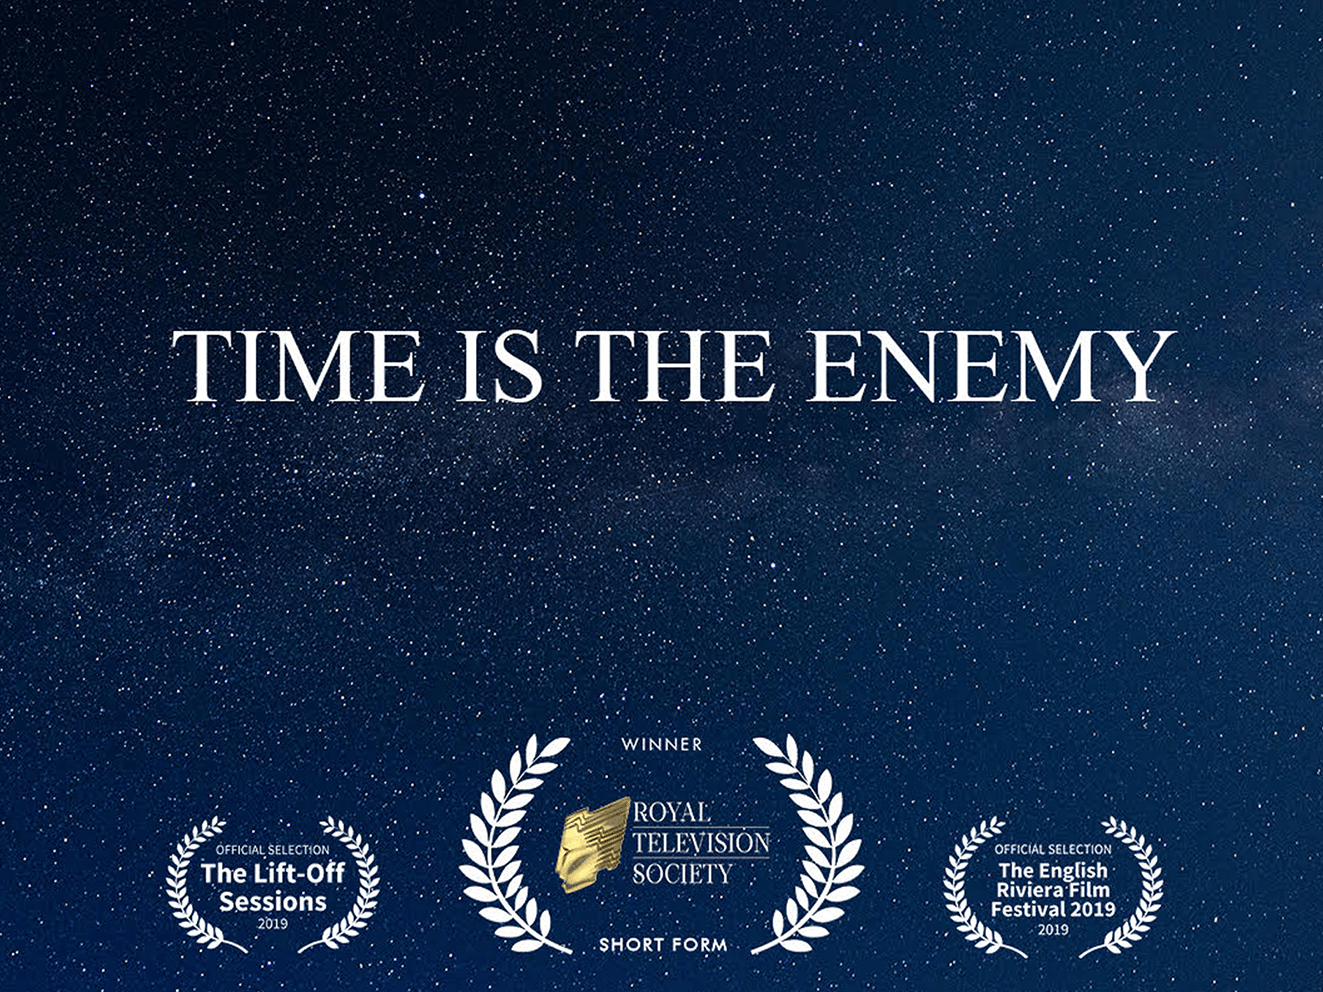 The poster for 'Time Is The Enemy'